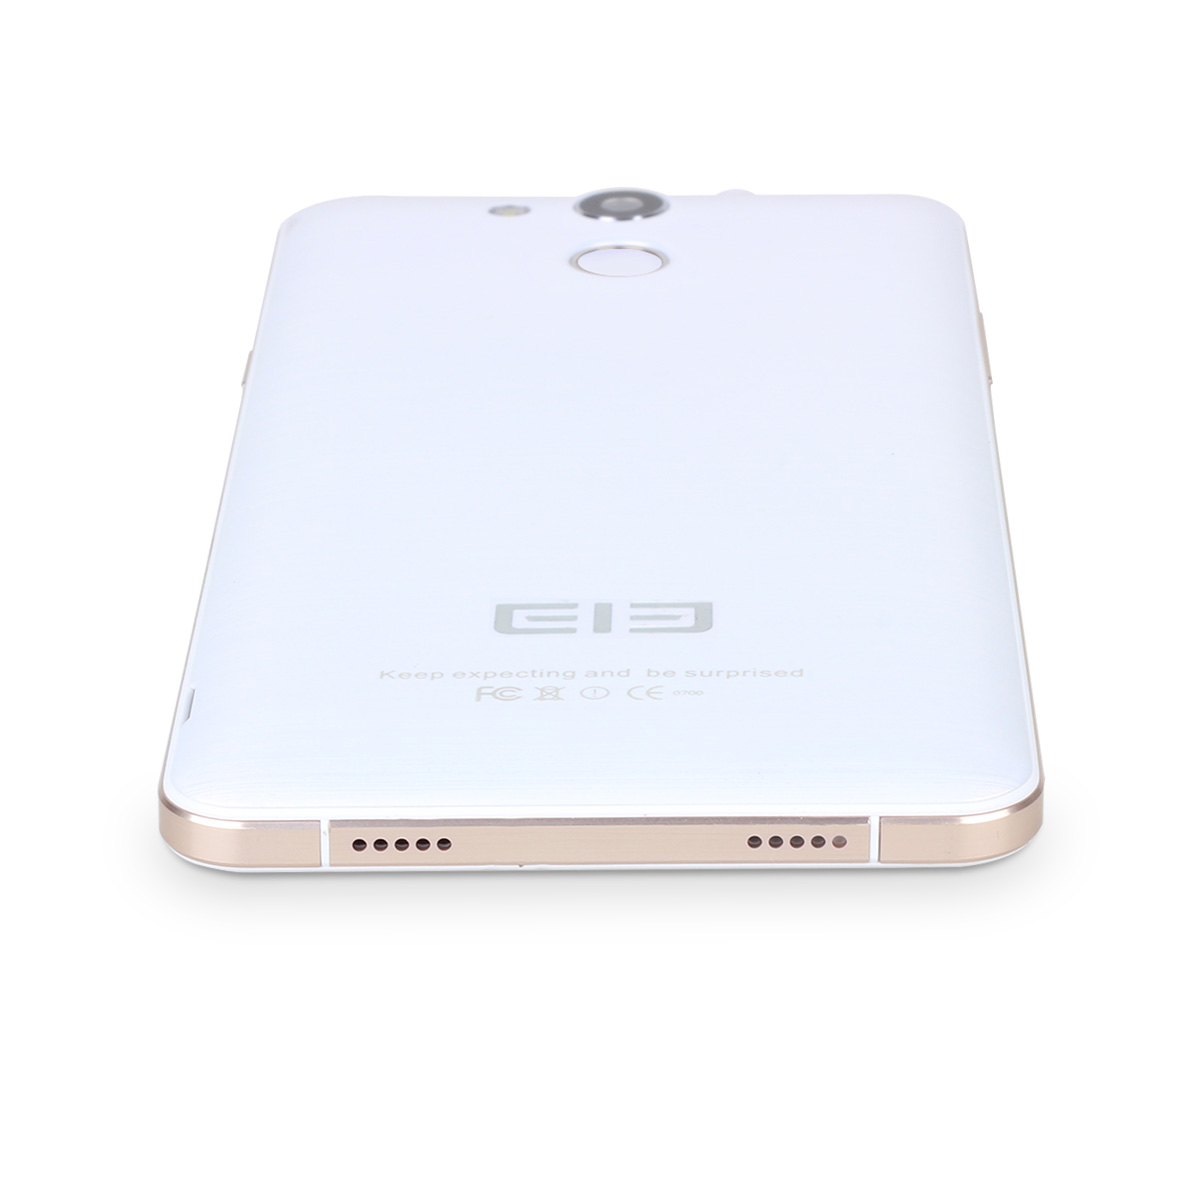 elephone p7000 pioneer smartphone touch id 3gb 16gb 64bit mtk6752 5 5 39 39 fhd white. Black Bedroom Furniture Sets. Home Design Ideas